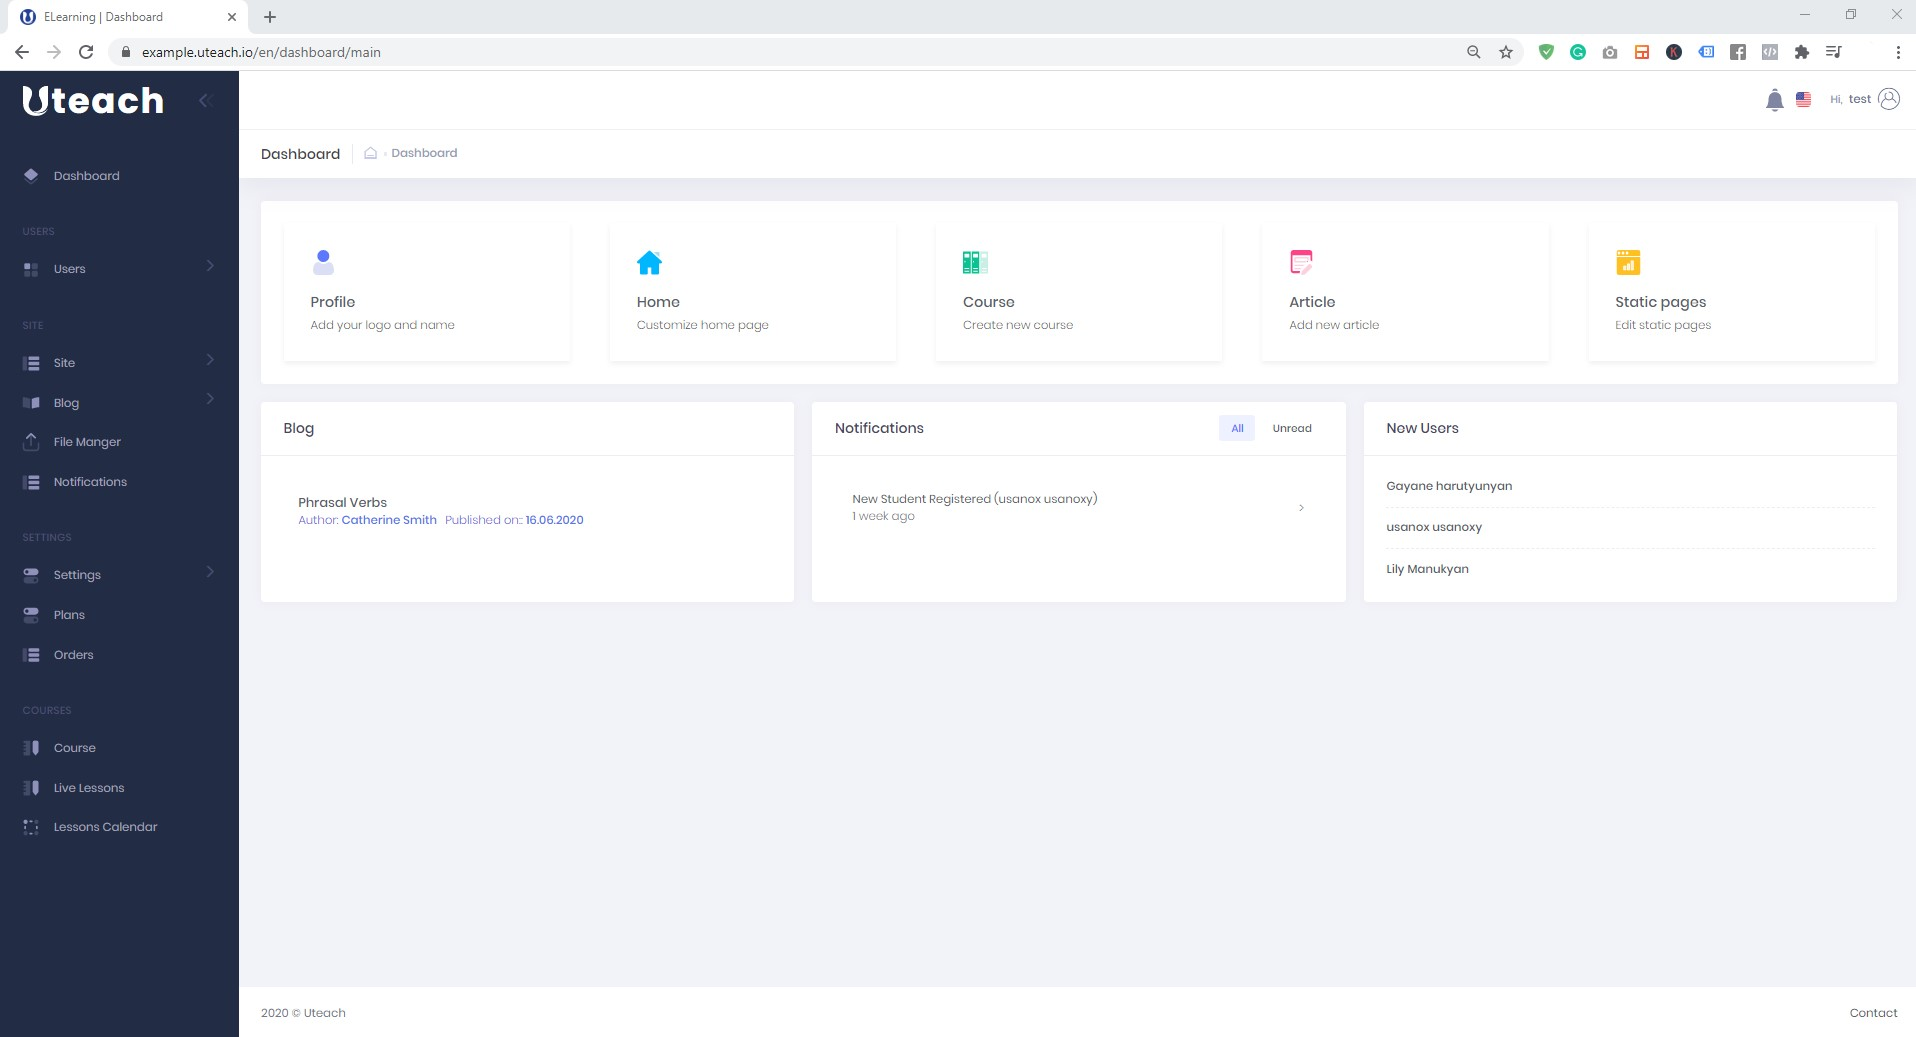 Uteach- Get familiar with the dashboard